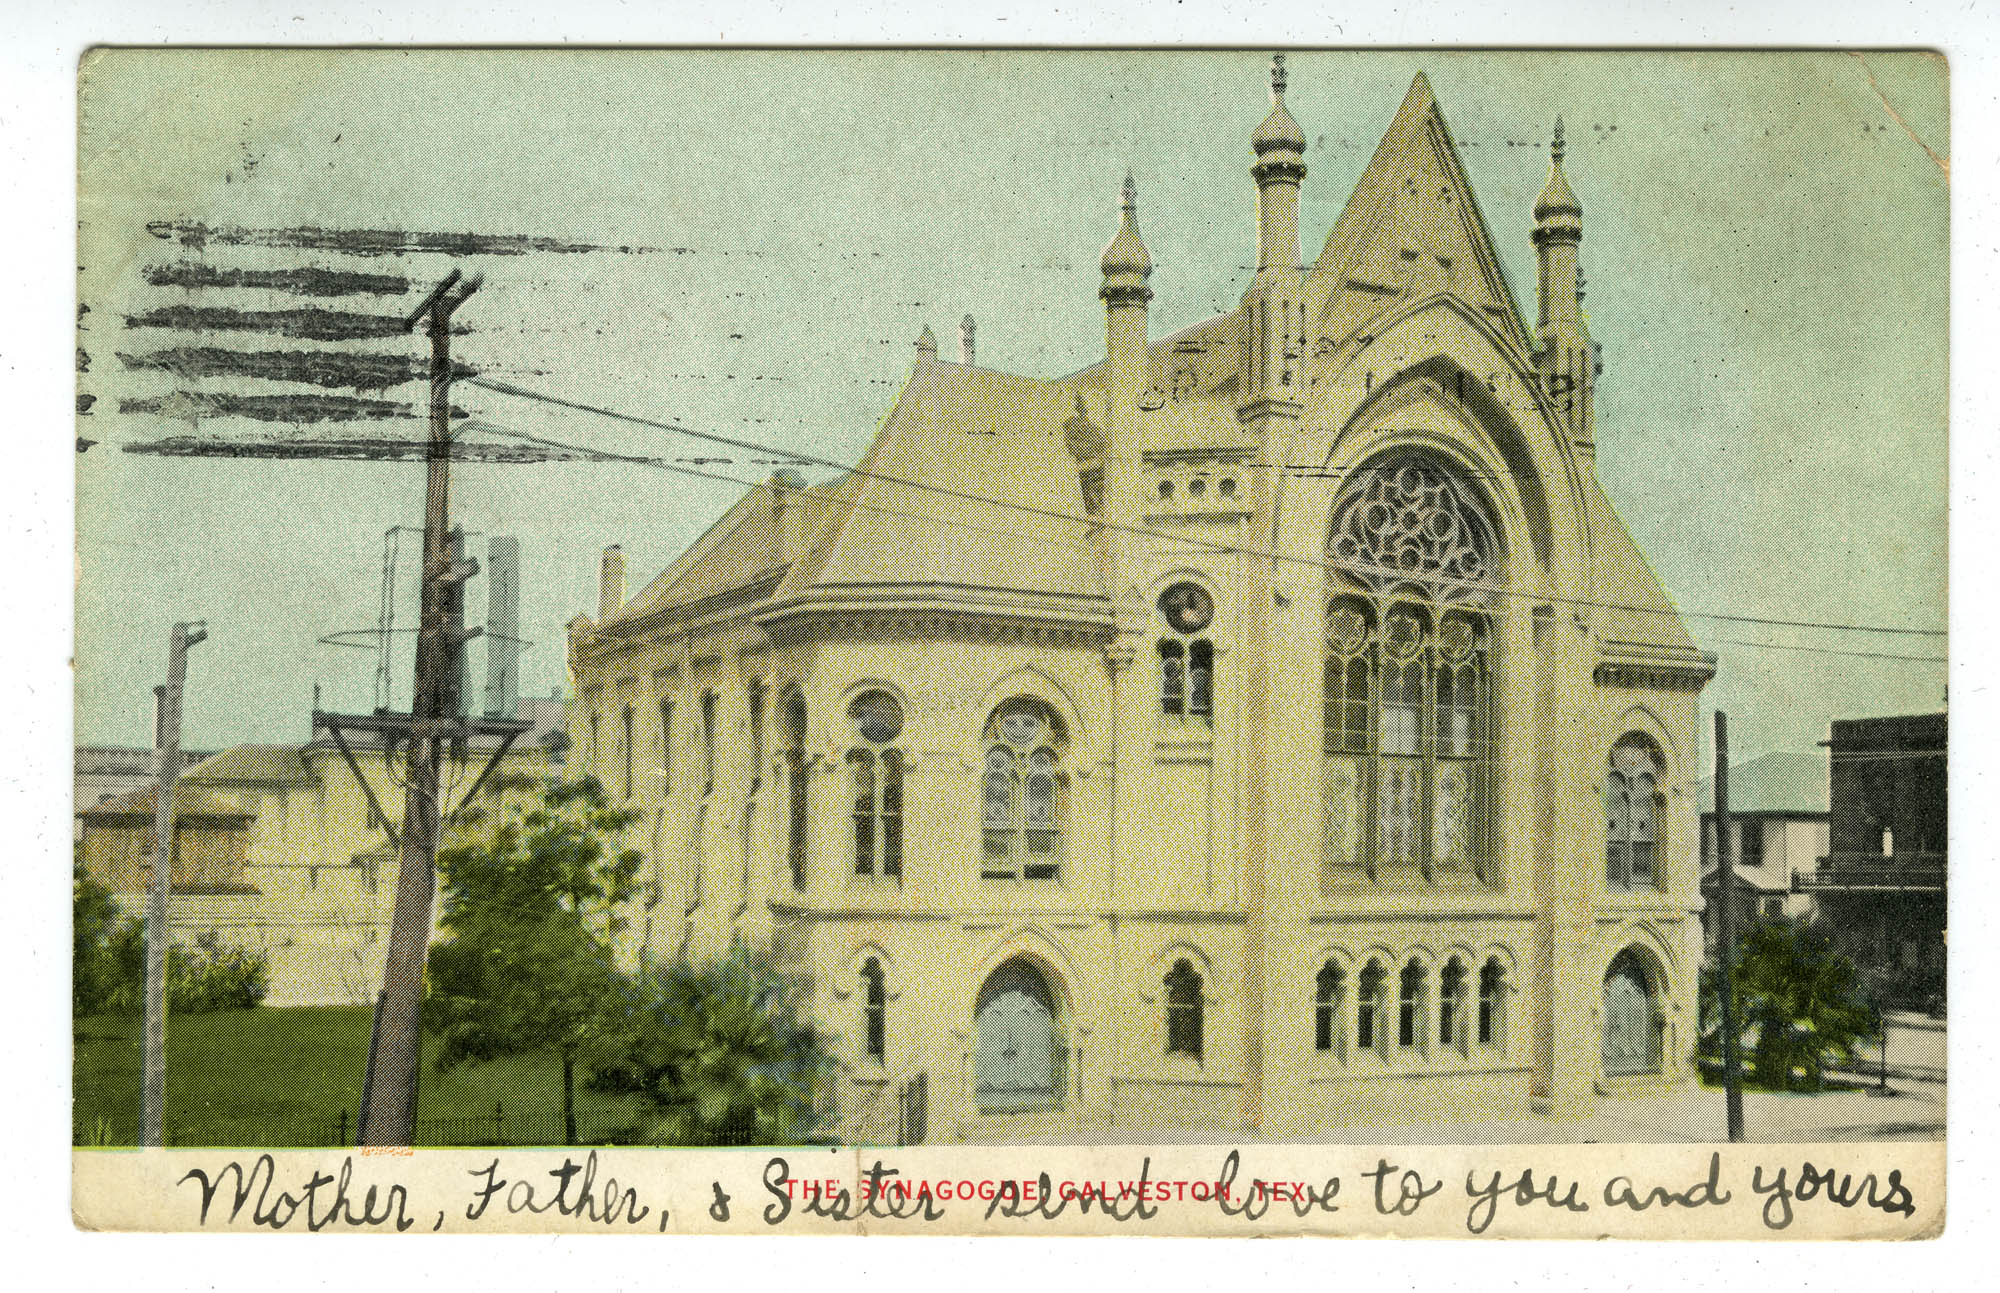 The synagogue, Galveston, Tex.